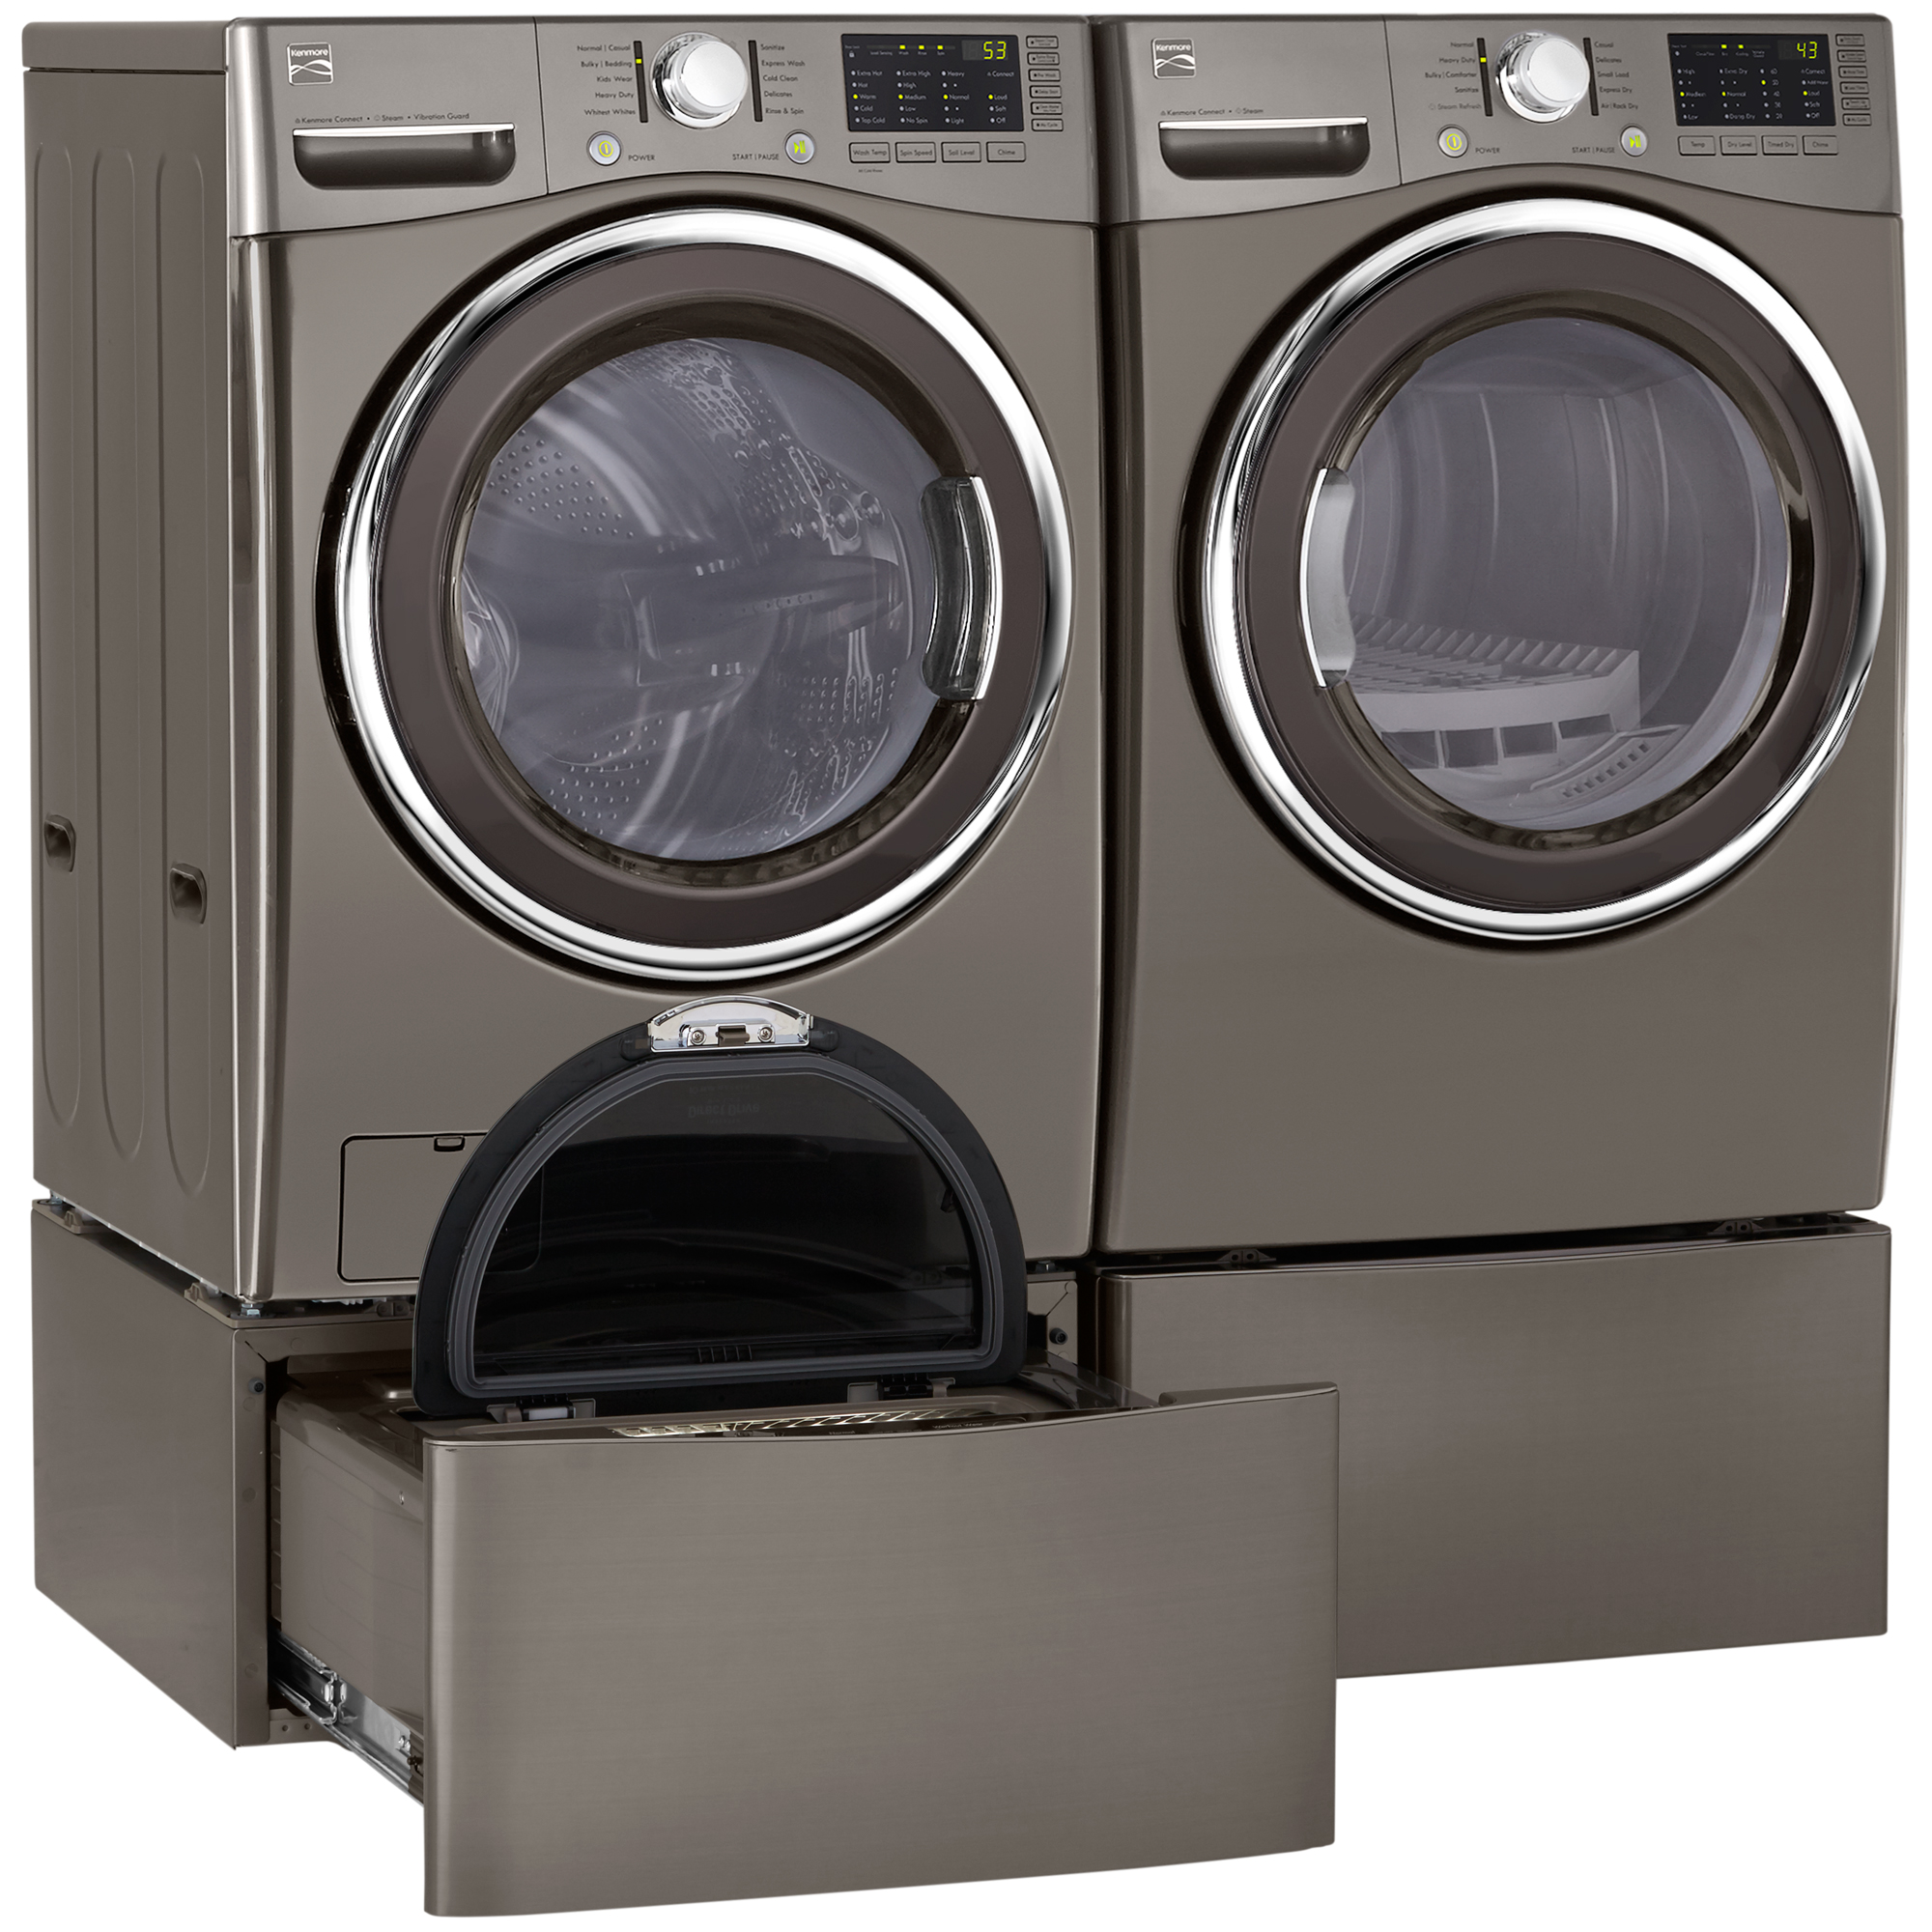 Kenmore 81383 7.4 cu. ft. Electric Dryer w/ Steam - Metallic Silver